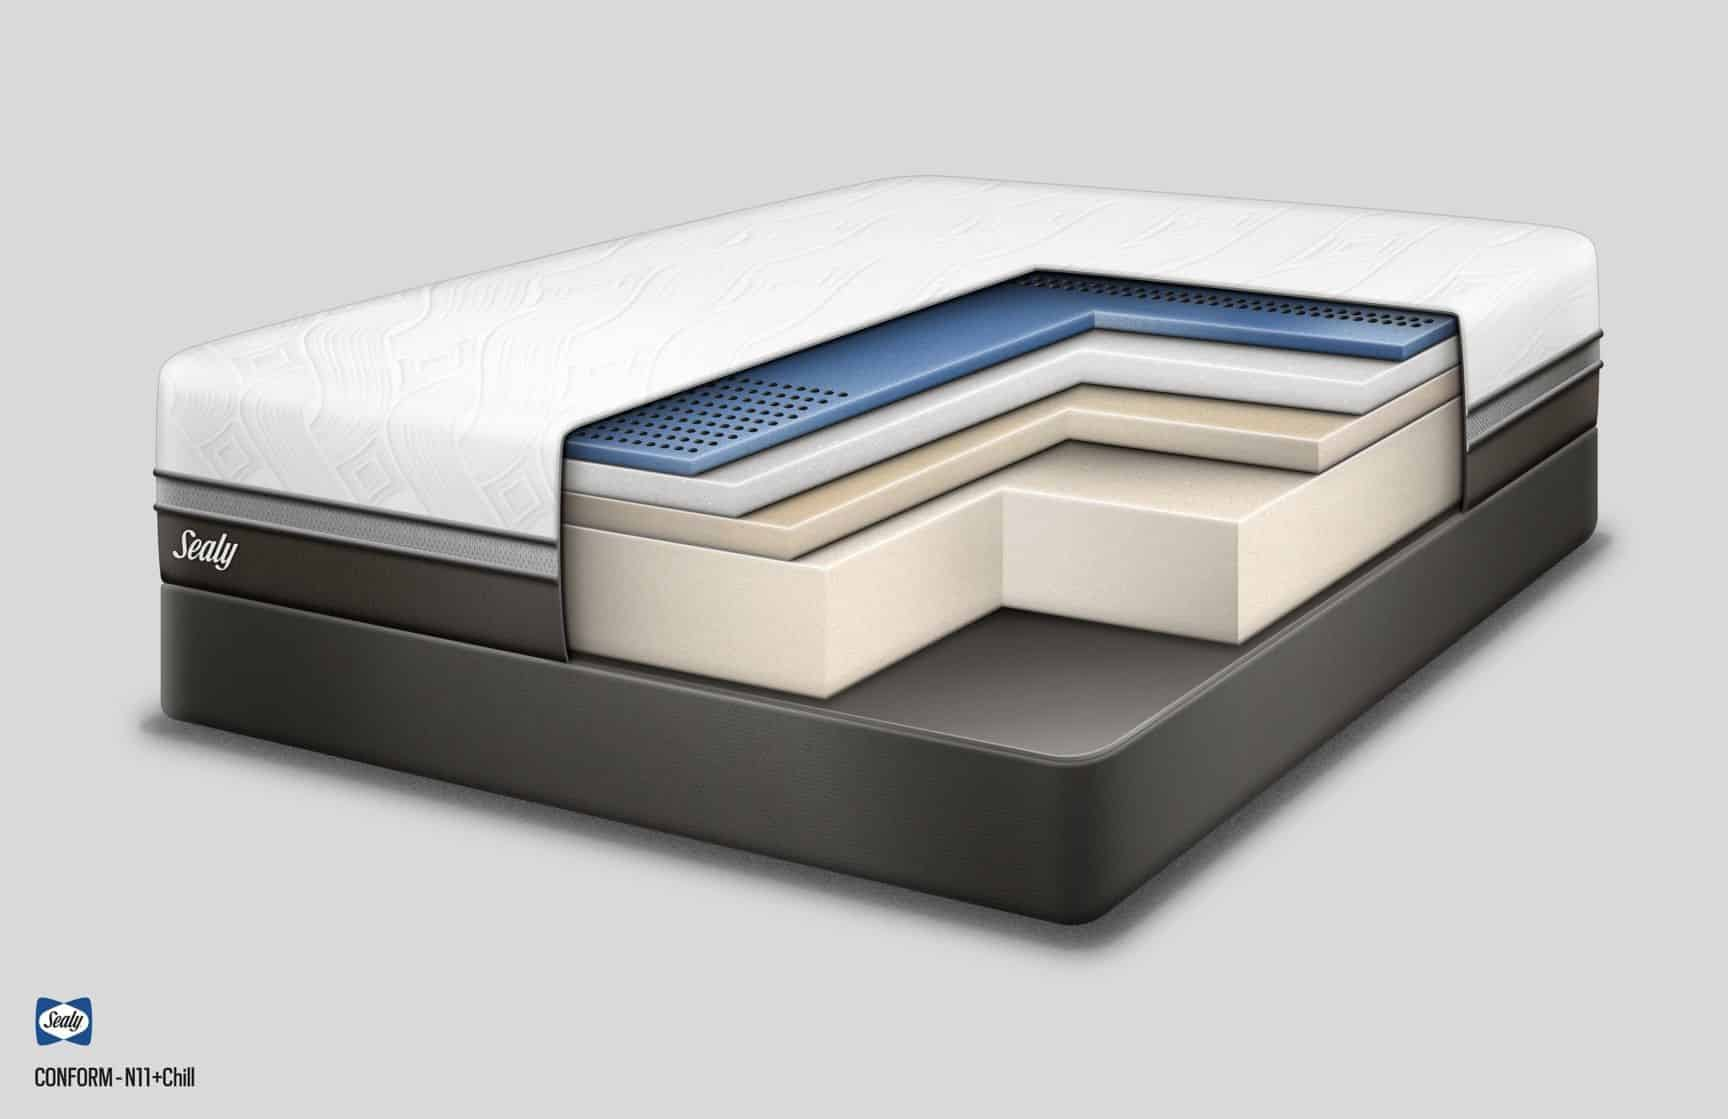 Sealy Posturepedic Mattress Review Get Best Mattress